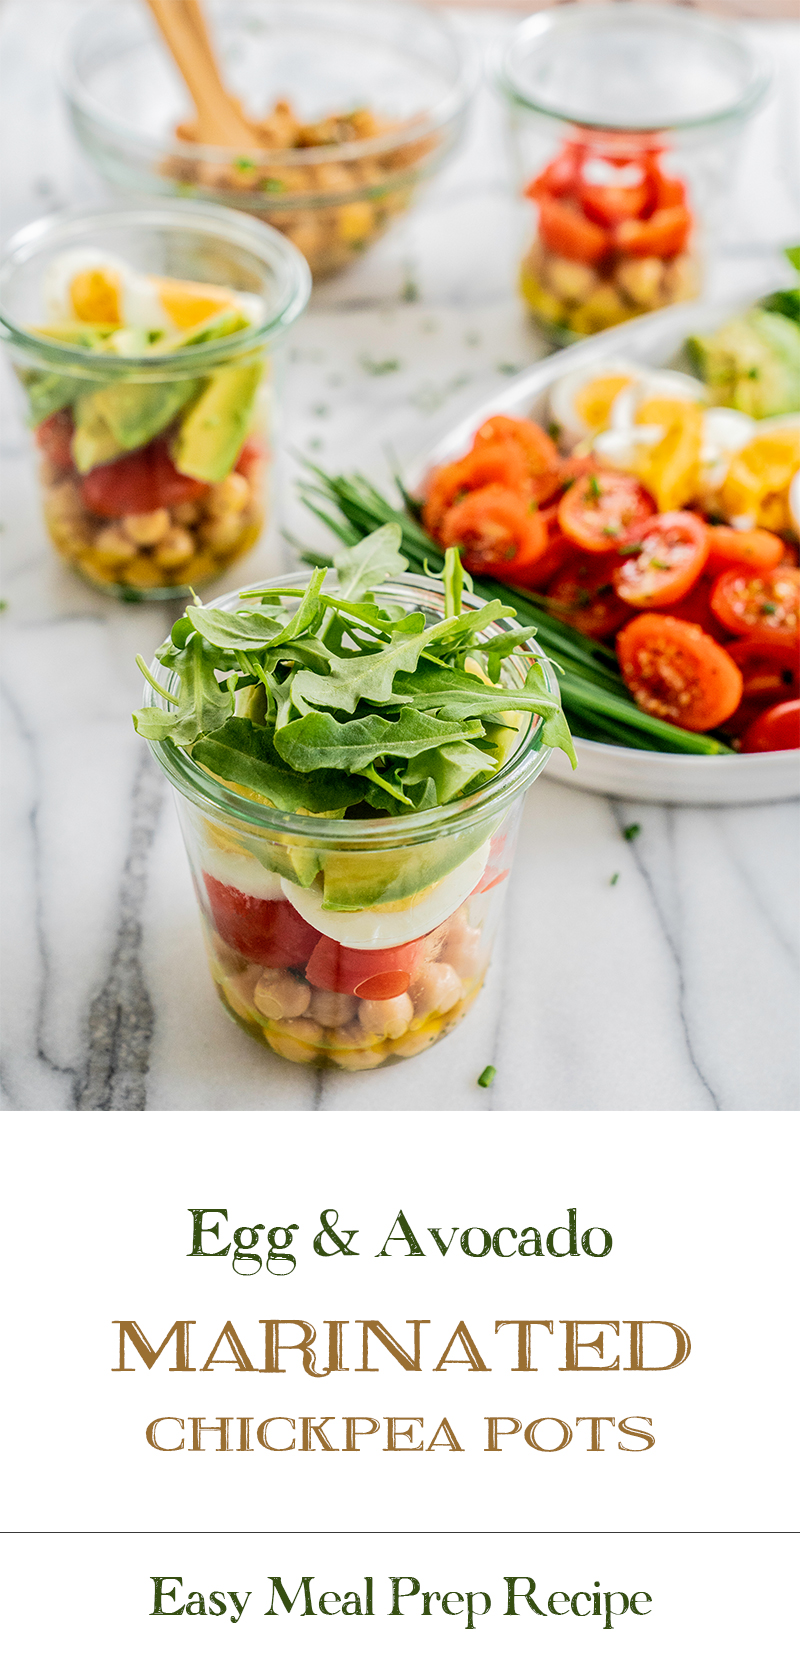 Easy-Egg-and-Avocado-Marinated-Chickpea-Salad-Pots